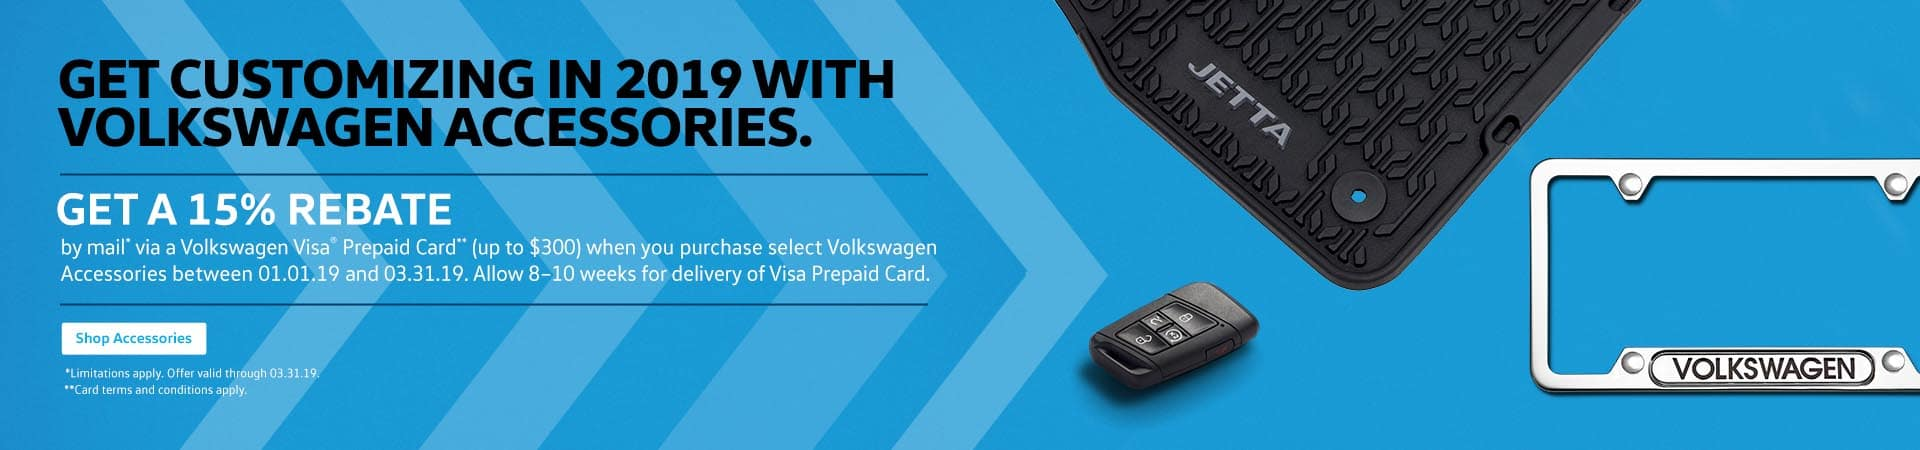 VW accessories discount